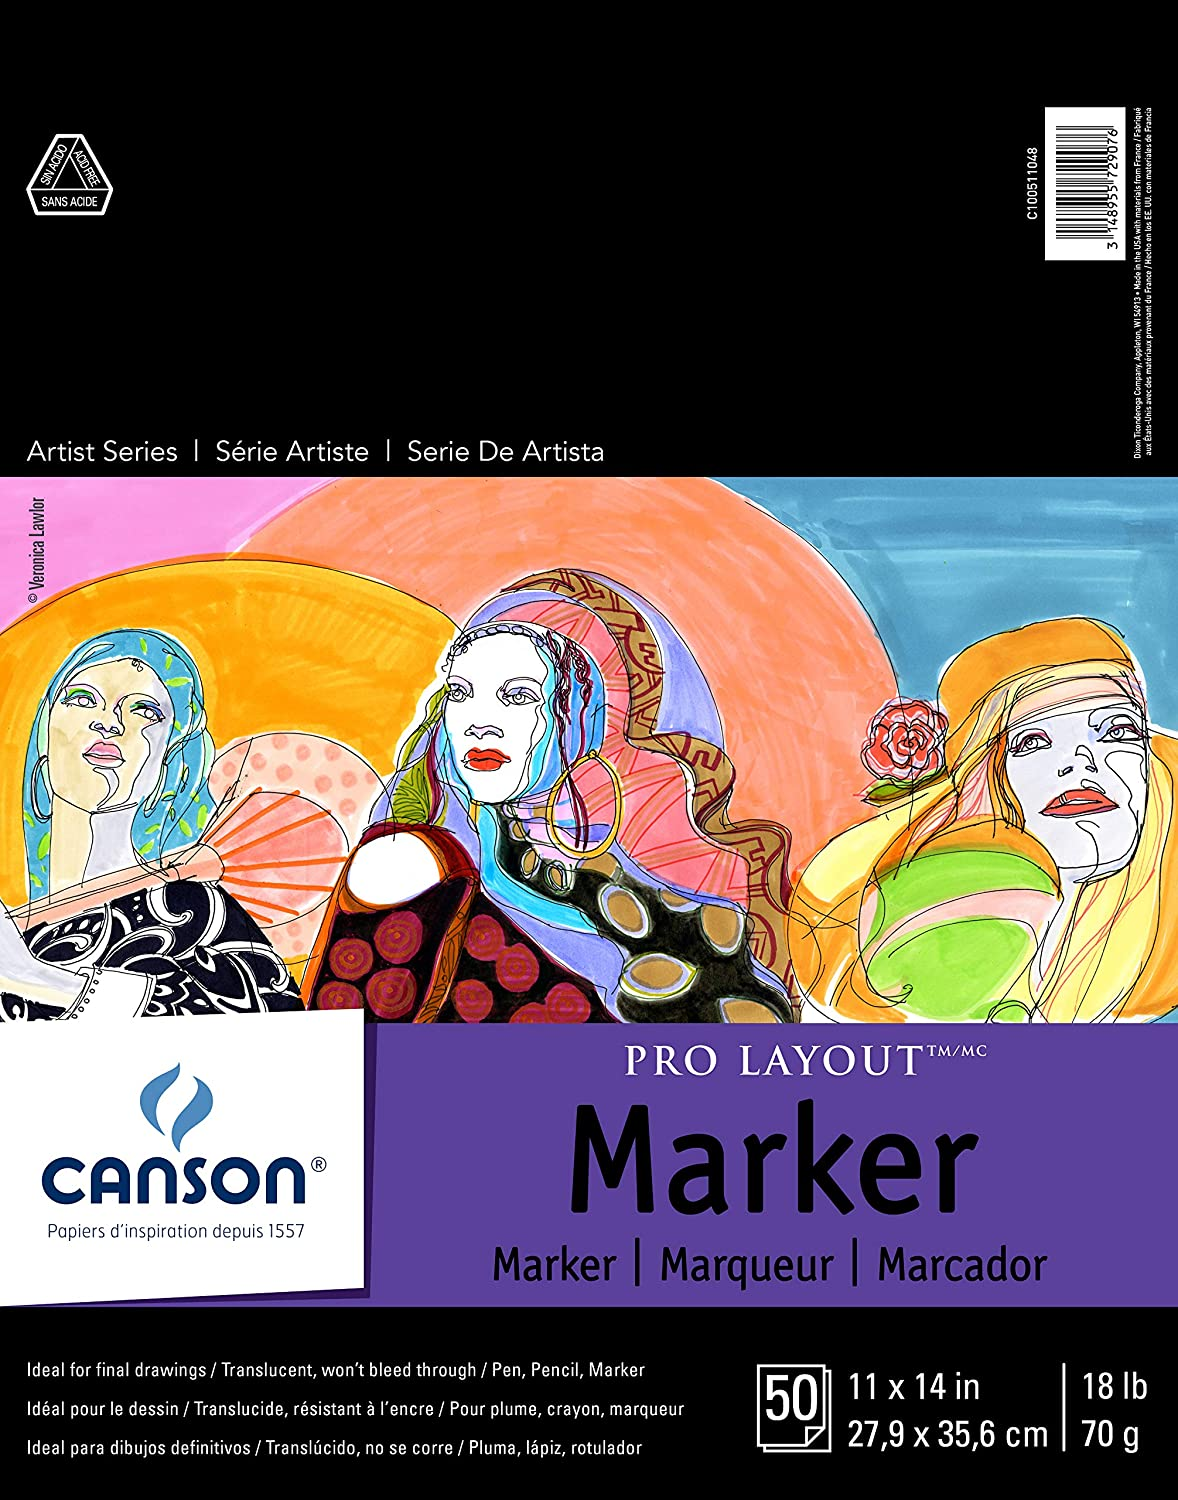 18 Pound Semi-Translucent for Pen 9 x 12 Inch Fold Over 50 Sheets White Pencil and Marker Canson Artist Series Pro Layout Marker Pad